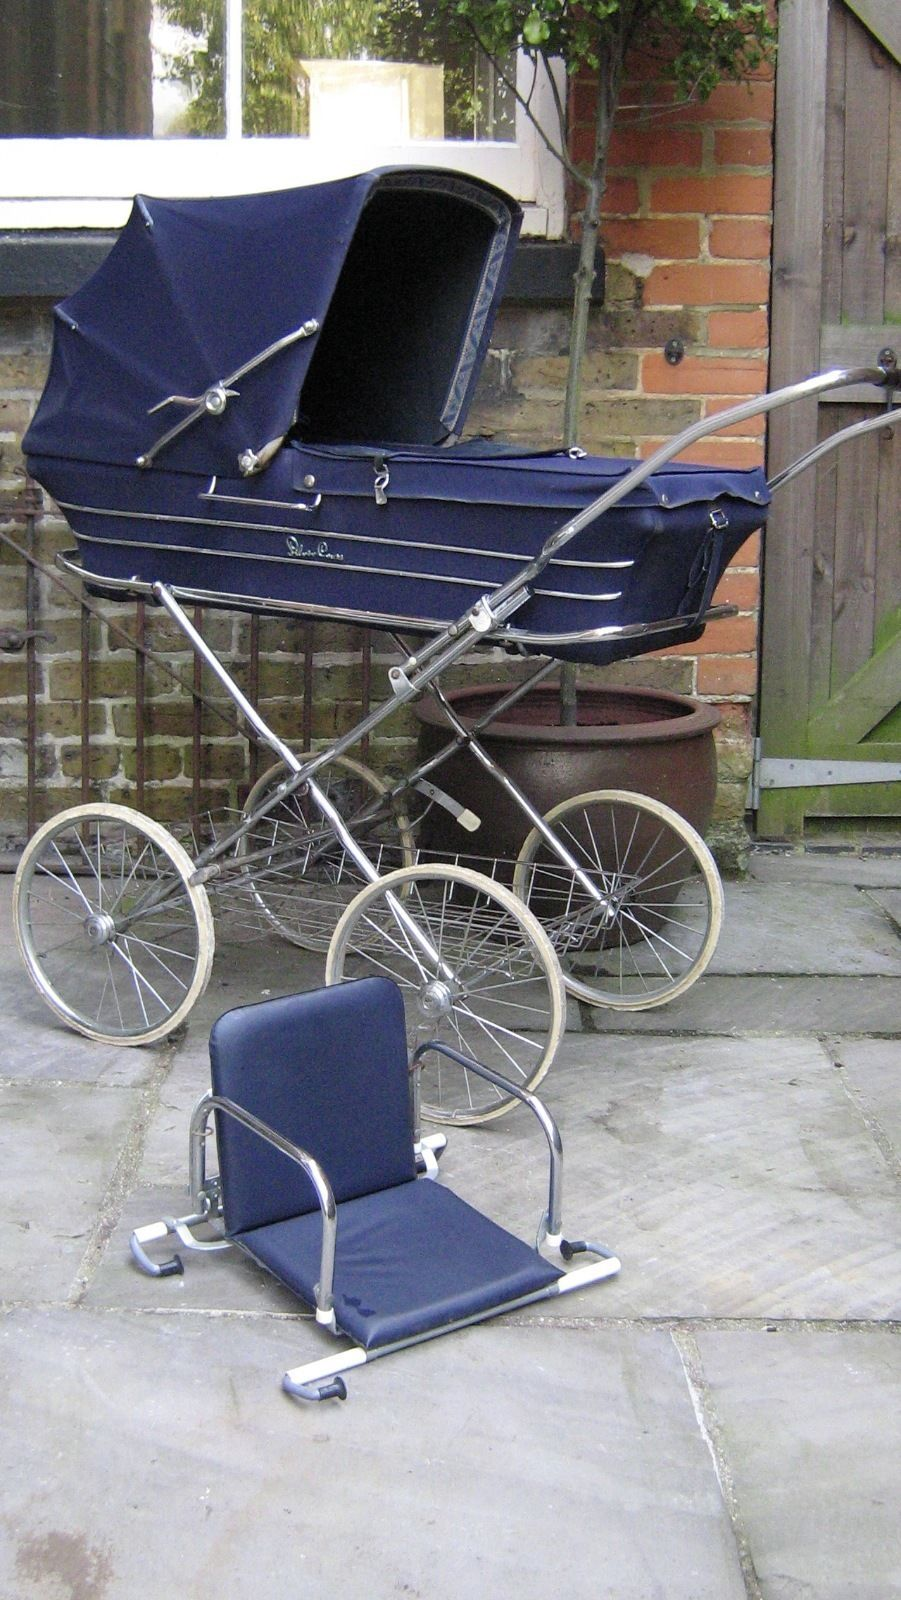 Silver Cross Pushchairs On Ebay Vintage Silver Cross Classic Sleepover Vintage Carriage